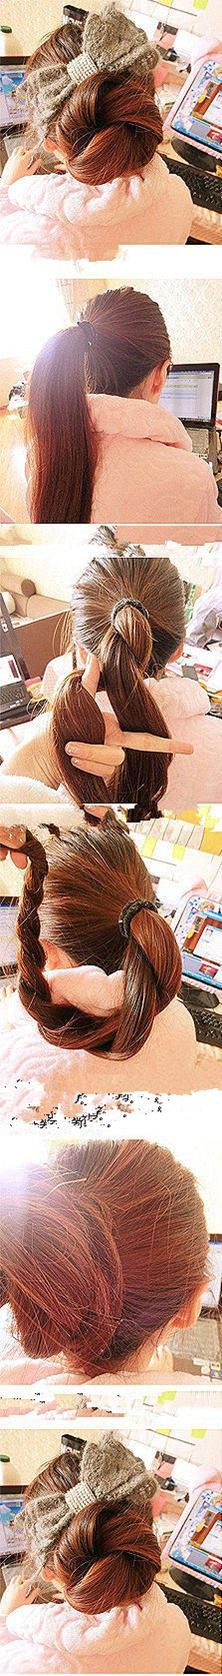 The style and bow <3